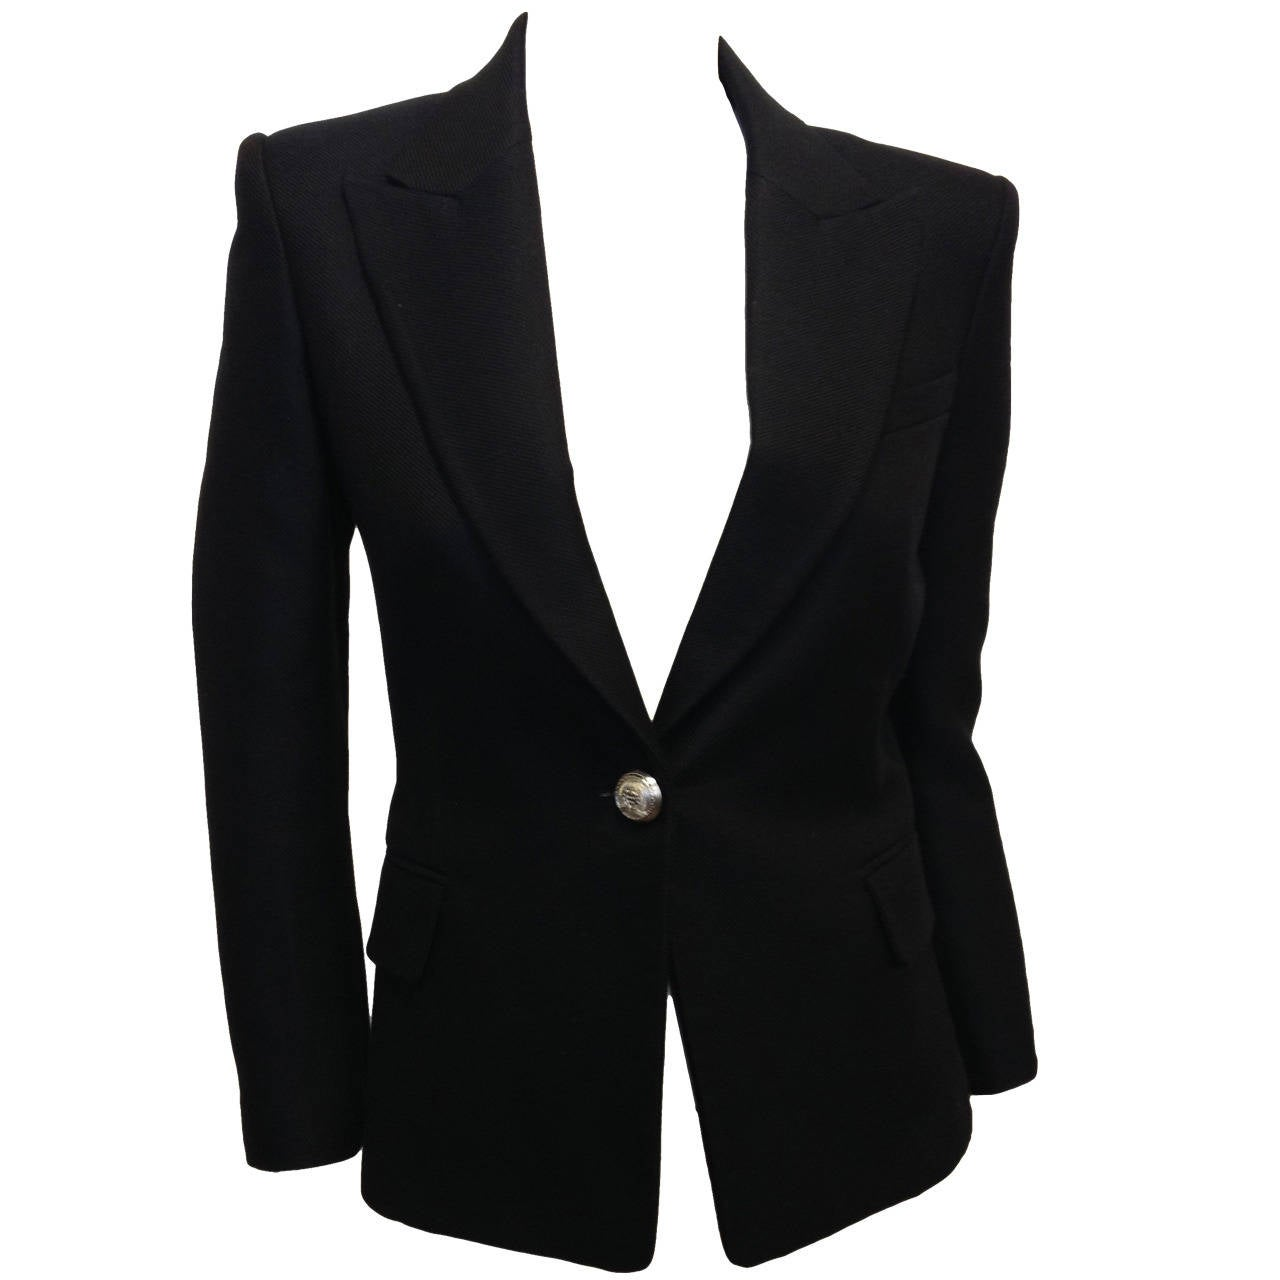 Balmain Black Blazer with Silver Buttons